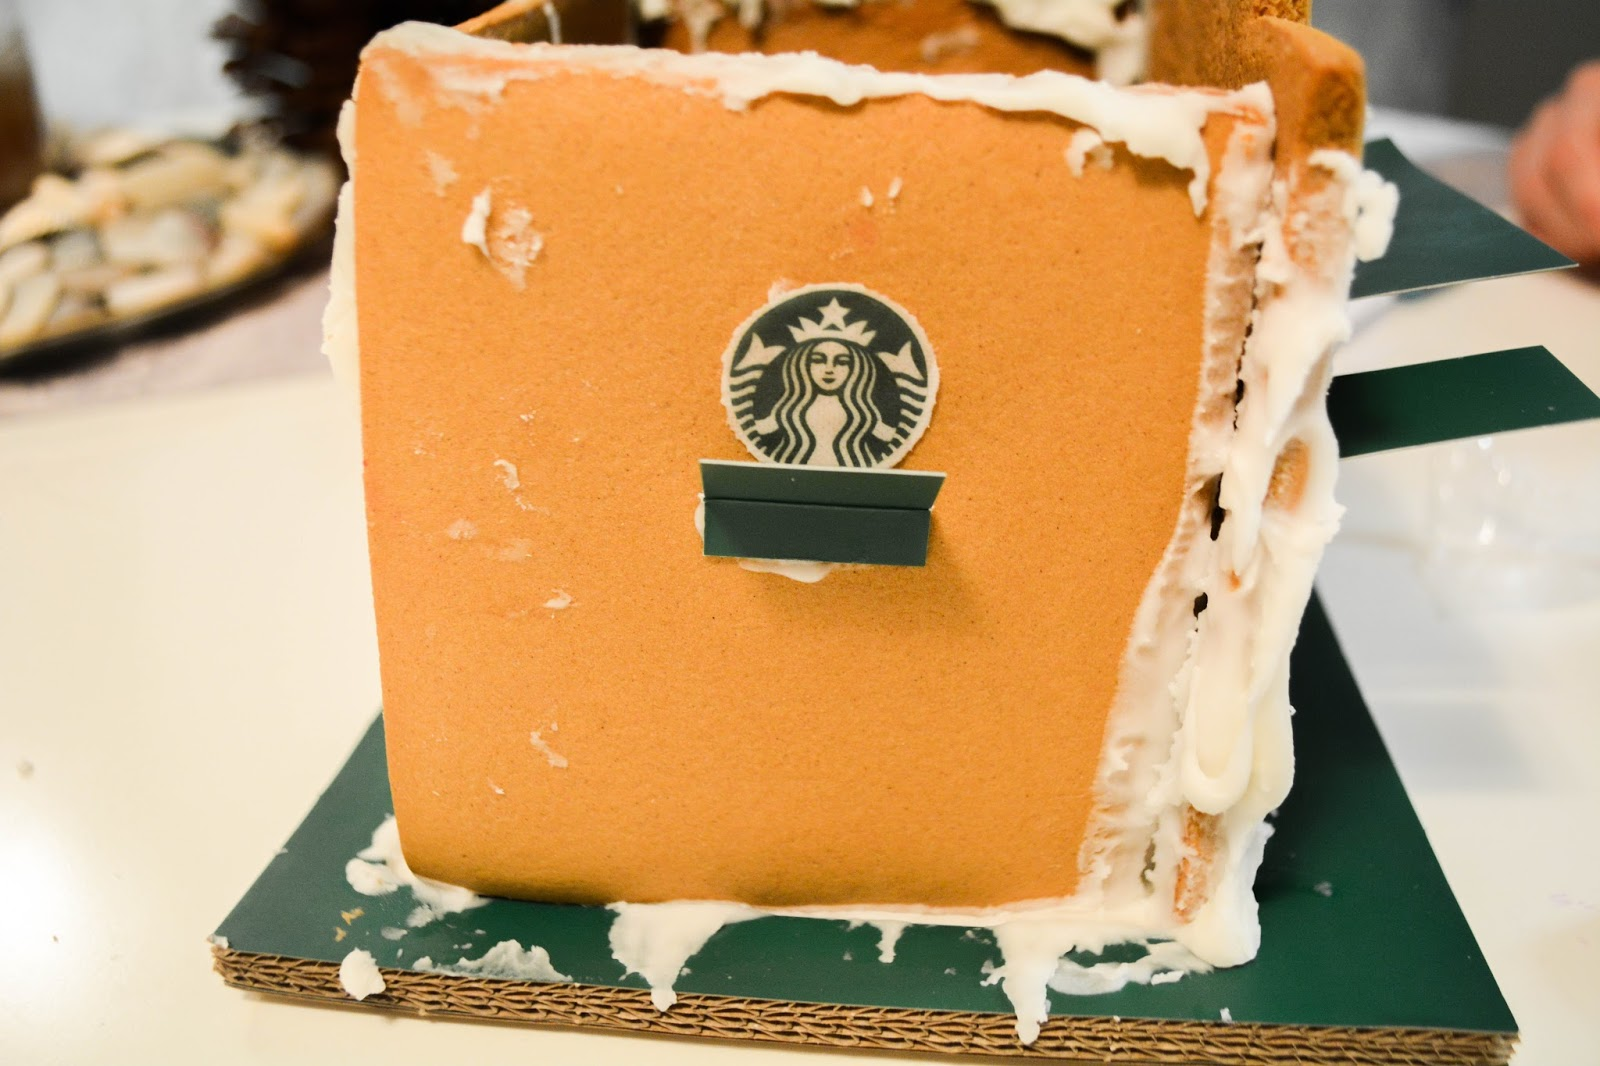 Starbucks Gingerbread Café